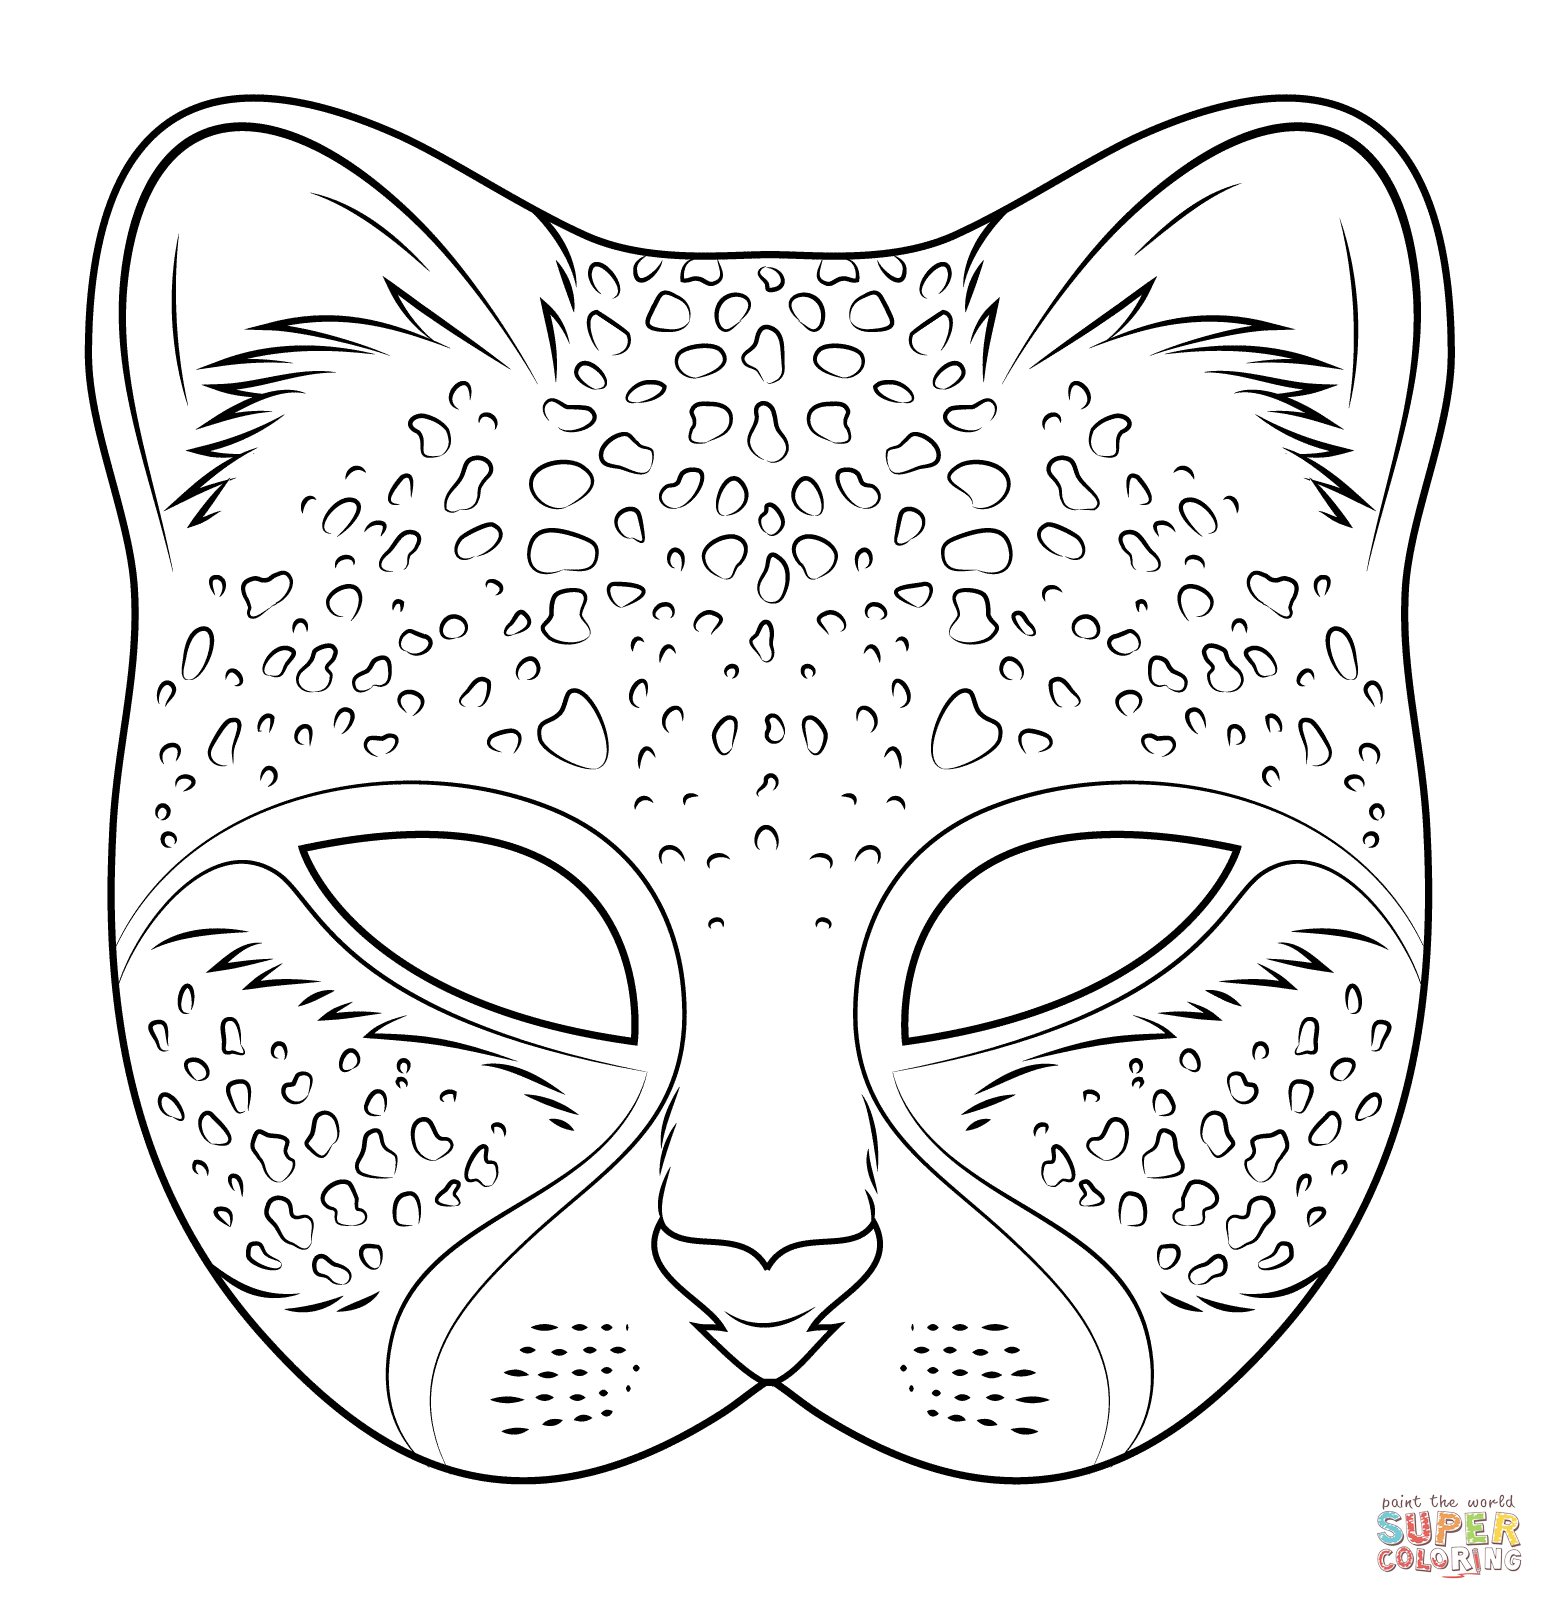 Cheetah Mask | Super Coloring … | Karneval | Pinte… - Animal Face Masks Printable Free